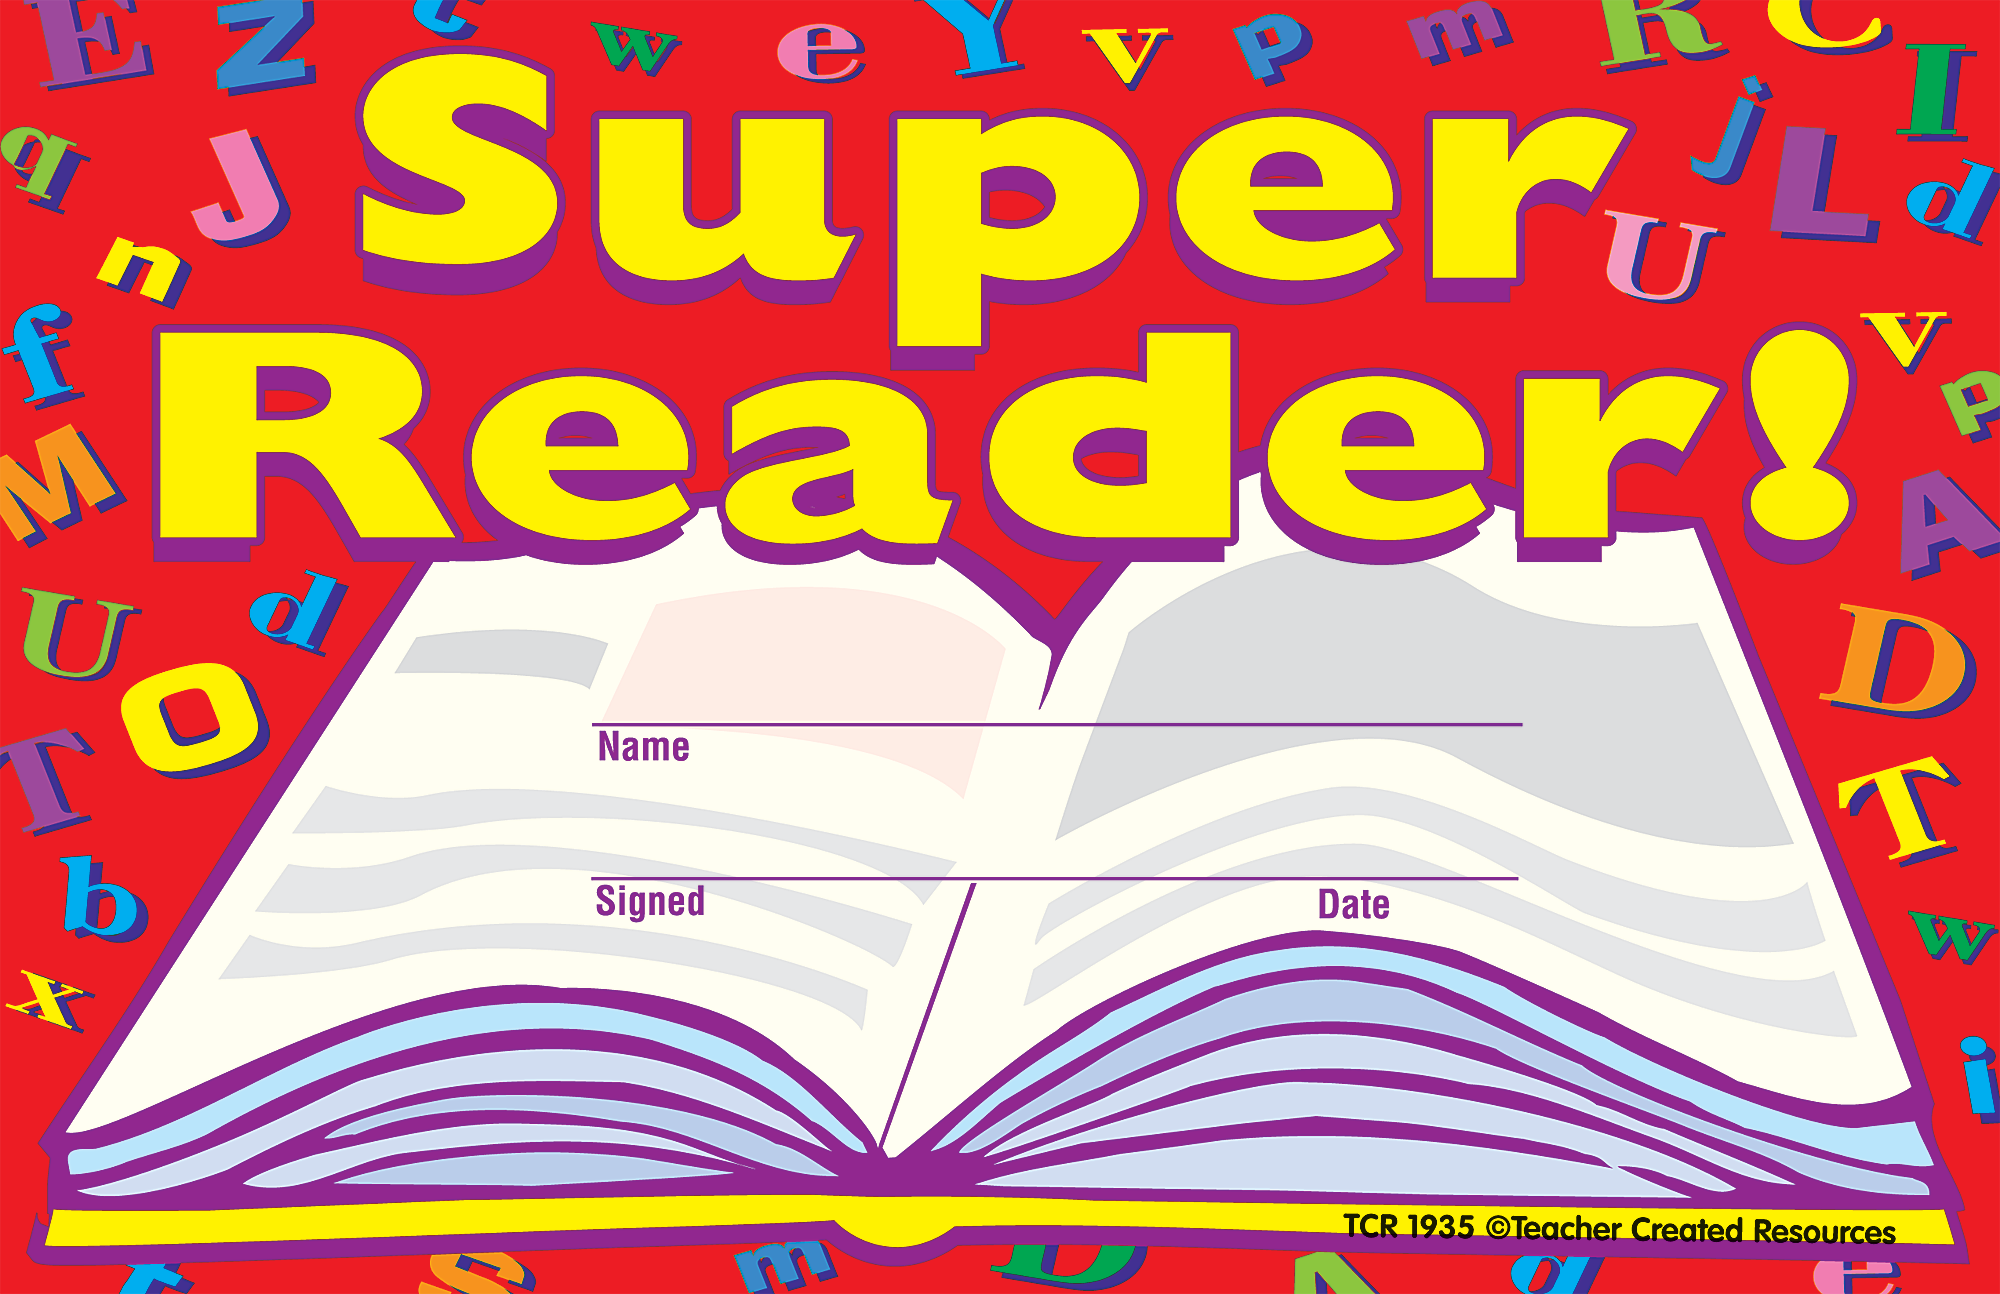 Super reader awards tcr1935 teacher created resources 1betcityfo Image collections